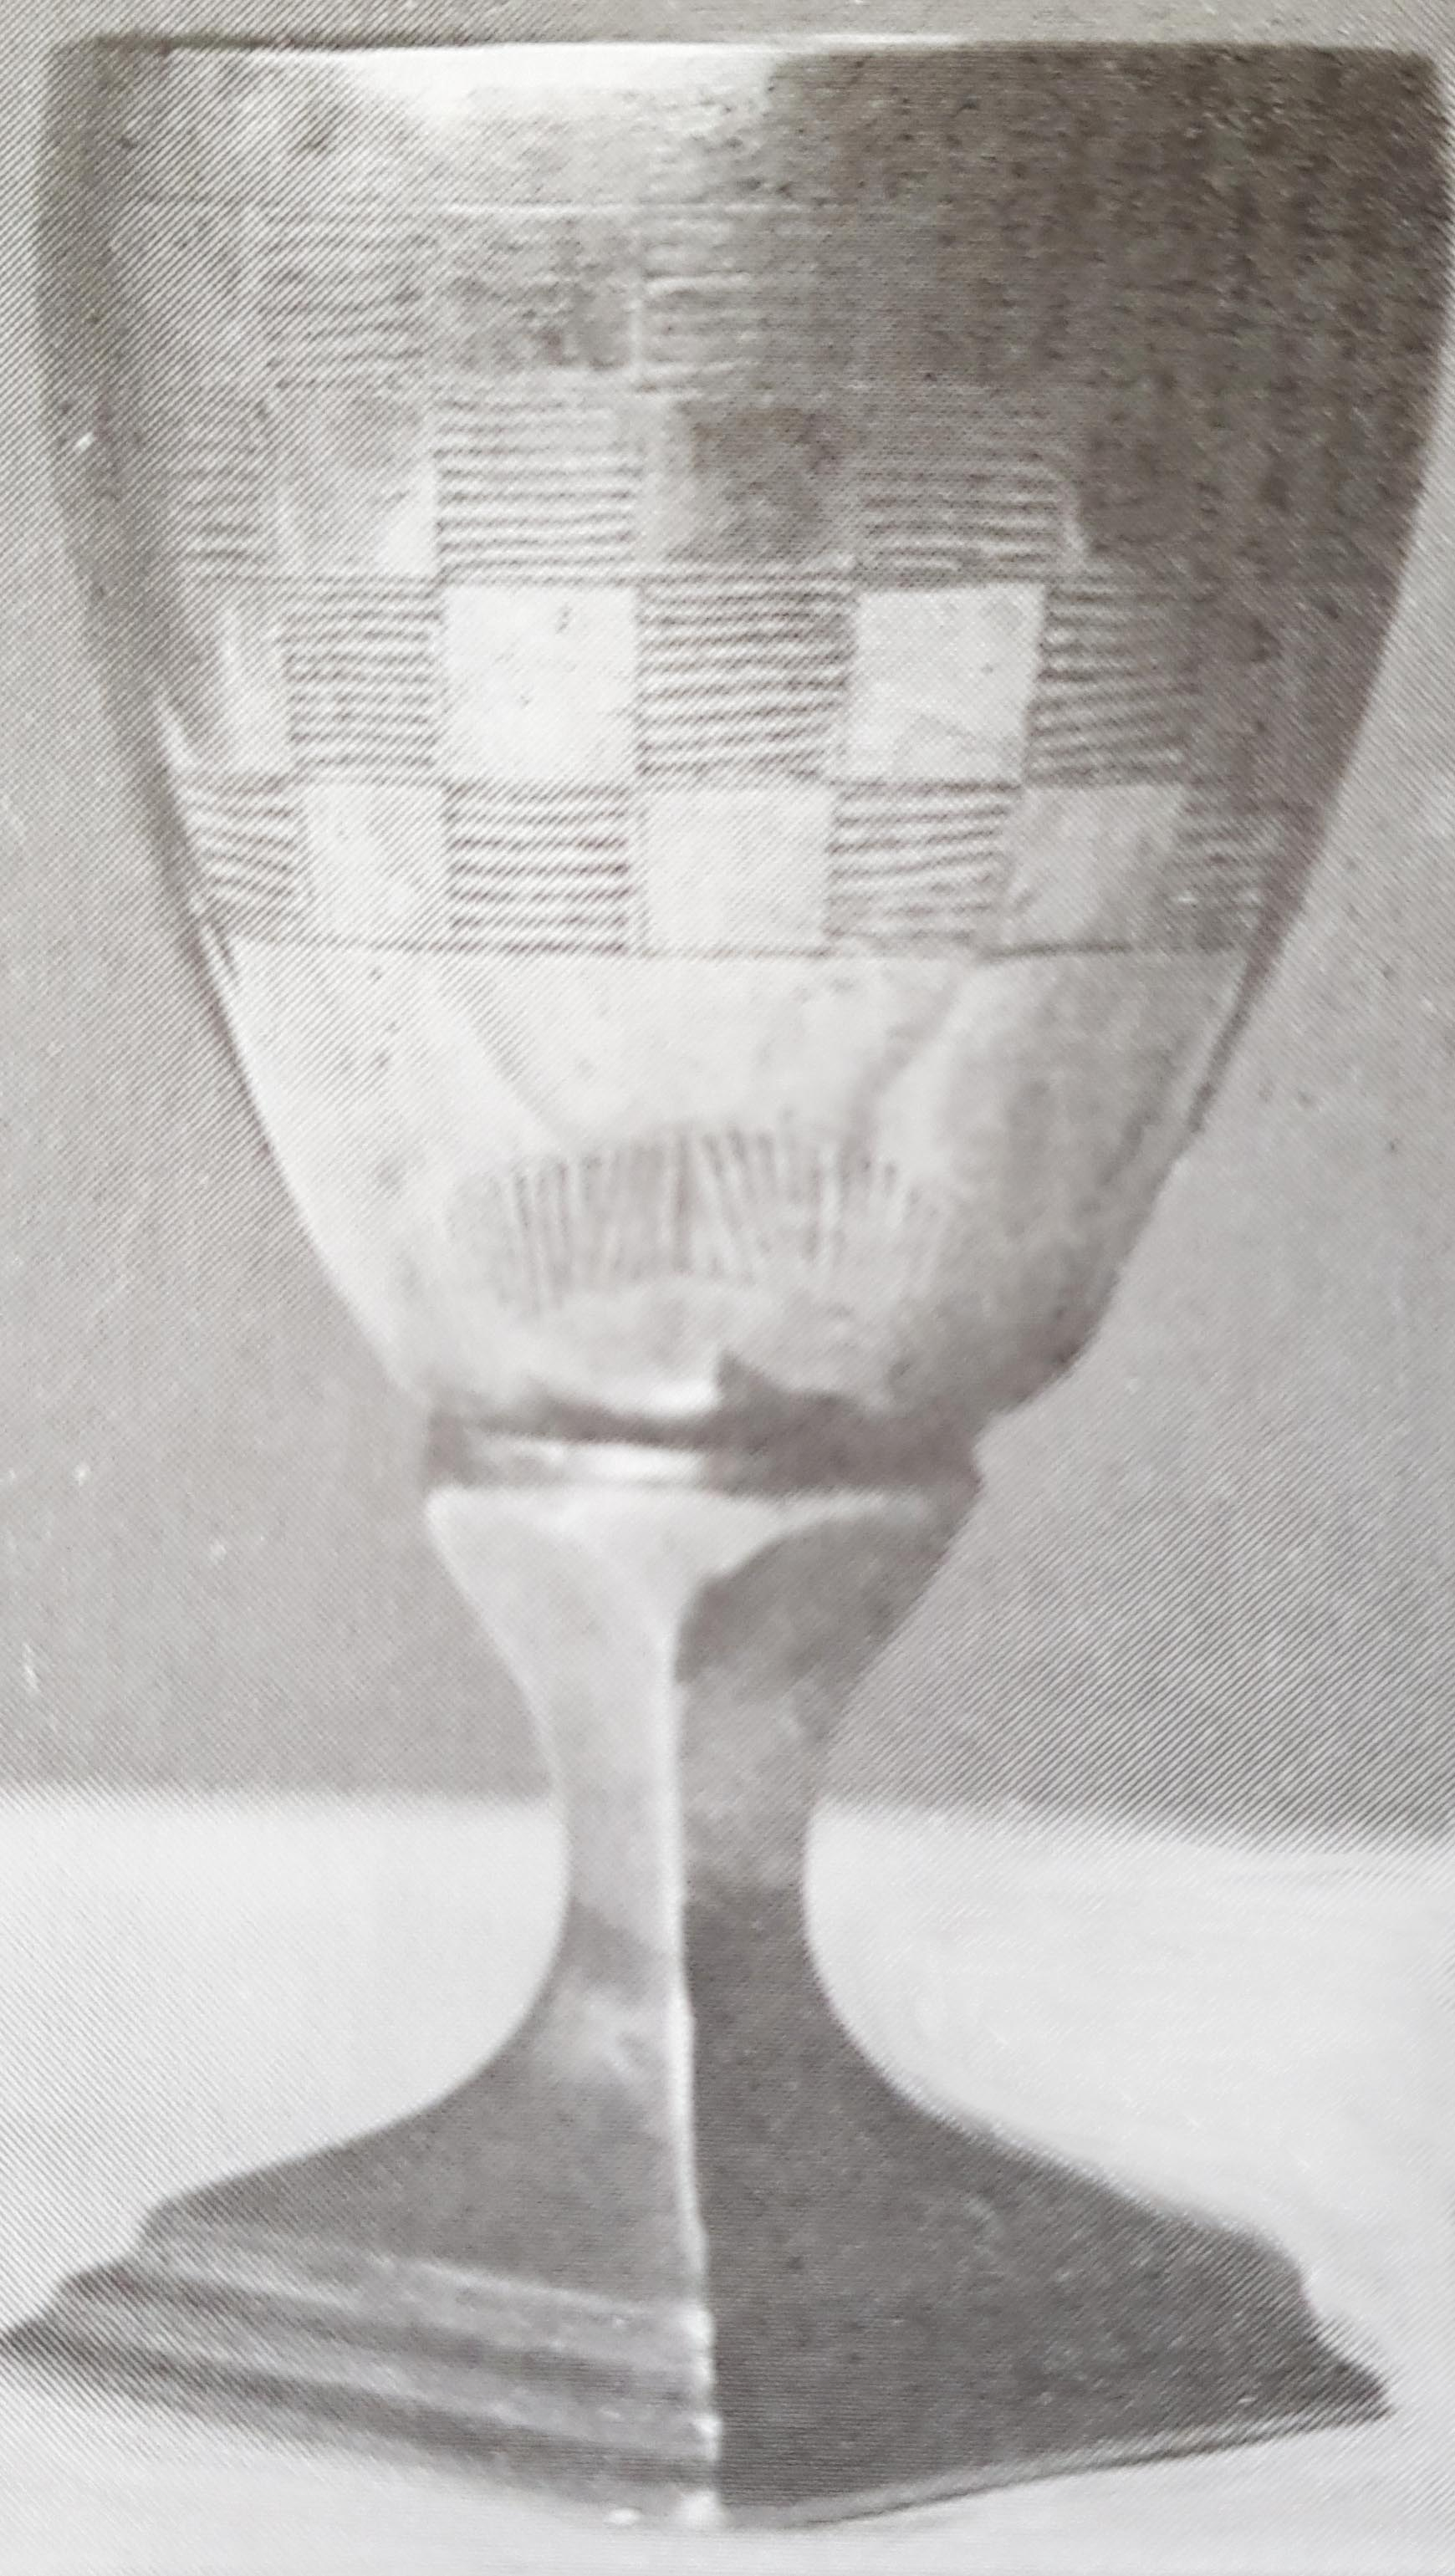 COUPE DE SHABBAT DE RABBI NAH'MAN.jpg